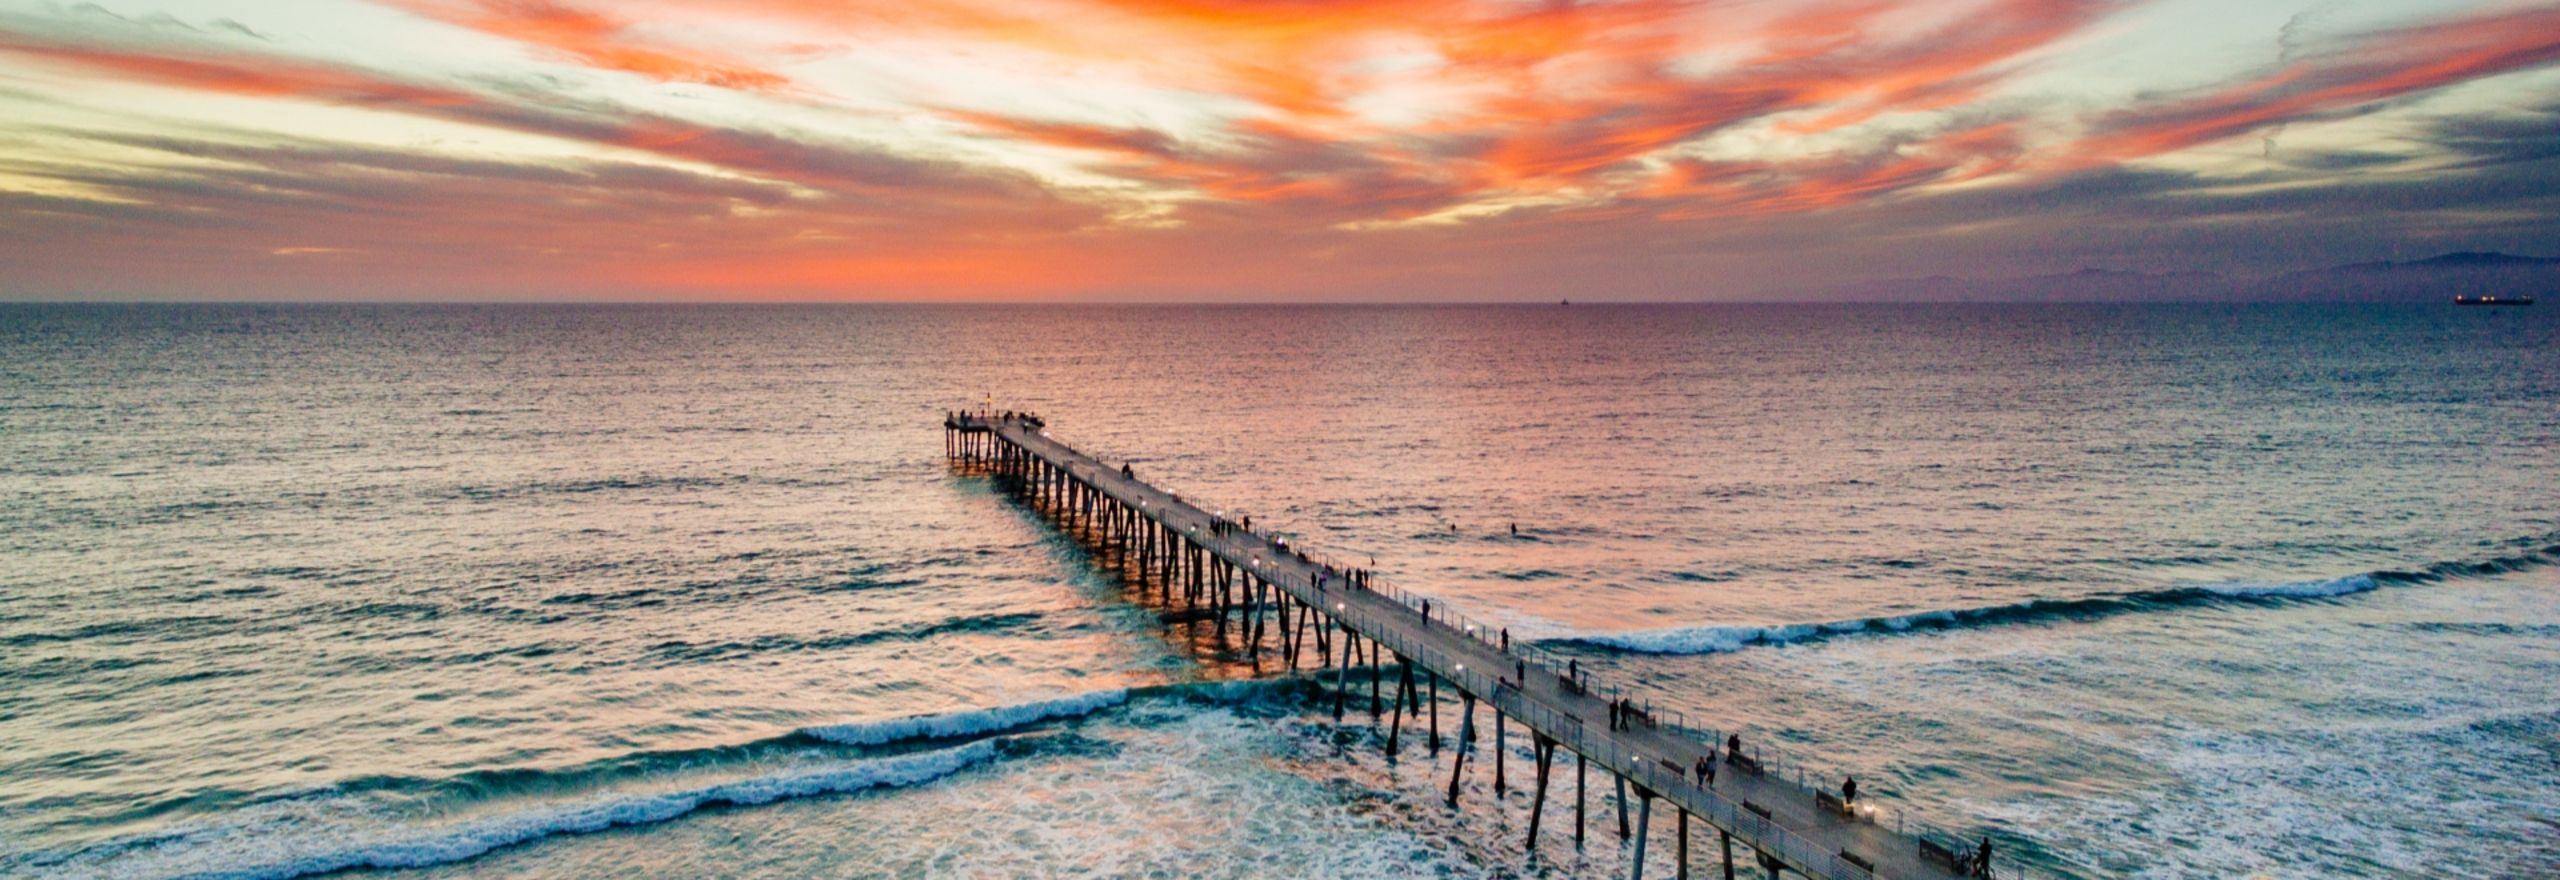 Real Estate June 2021 South Bay & Greater Los Angeles Market Statistics | The Lane Team